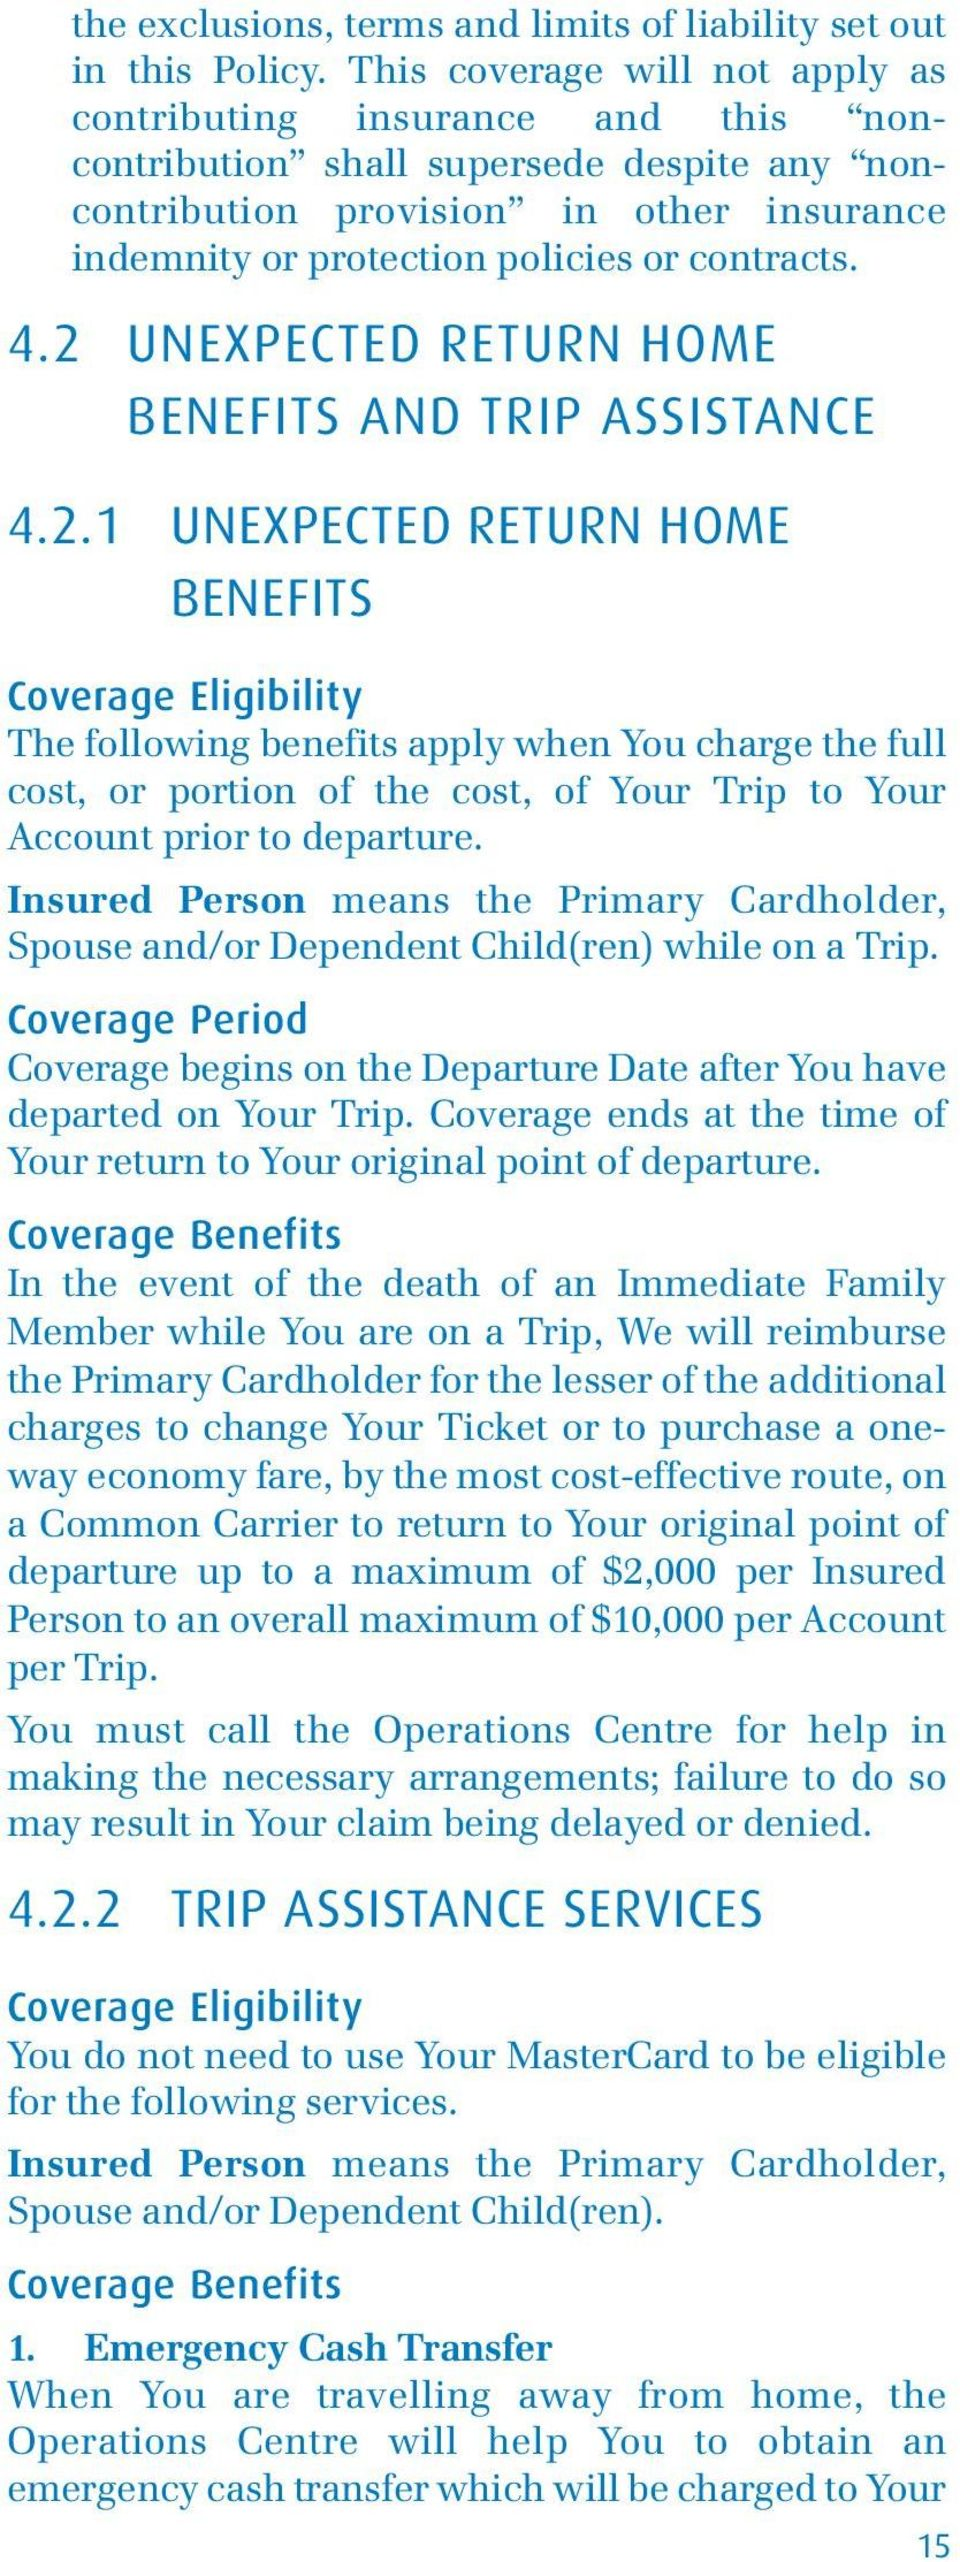 4.2 UNEXPECTED RETURN HOME BENEFITS AND TRIP ASSISTANCE 4.2.1 UNEXPECTED RETURN HOME BENEFITS Coverage Eligibility The following benefits apply when You charge the full cost, or portion of the cost, of Your Trip to Your Account prior to departure.